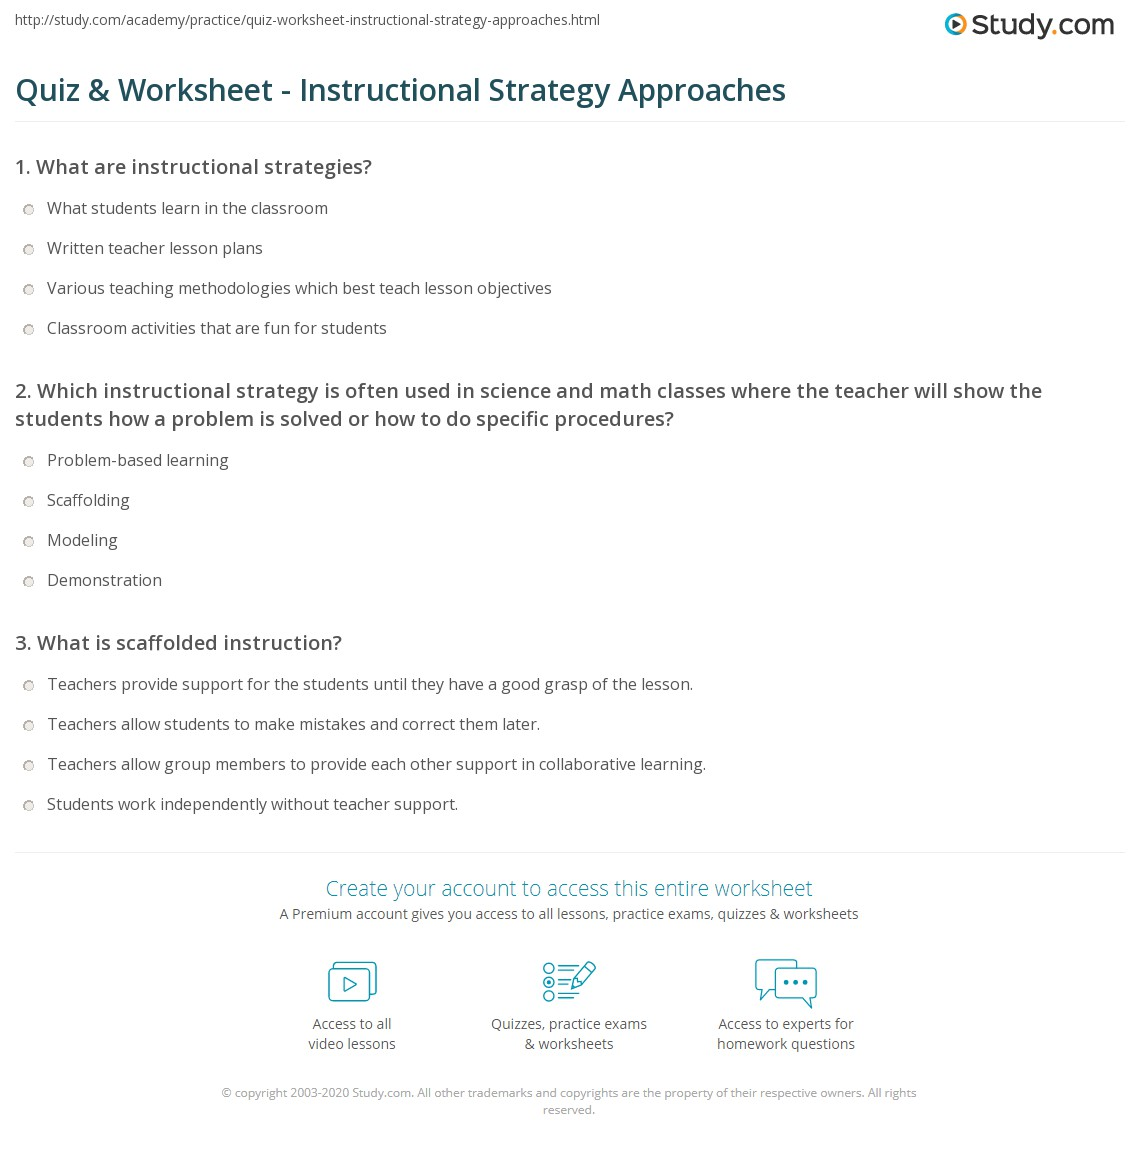 Quiz Worksheet Instructional Strategy Approaches Study